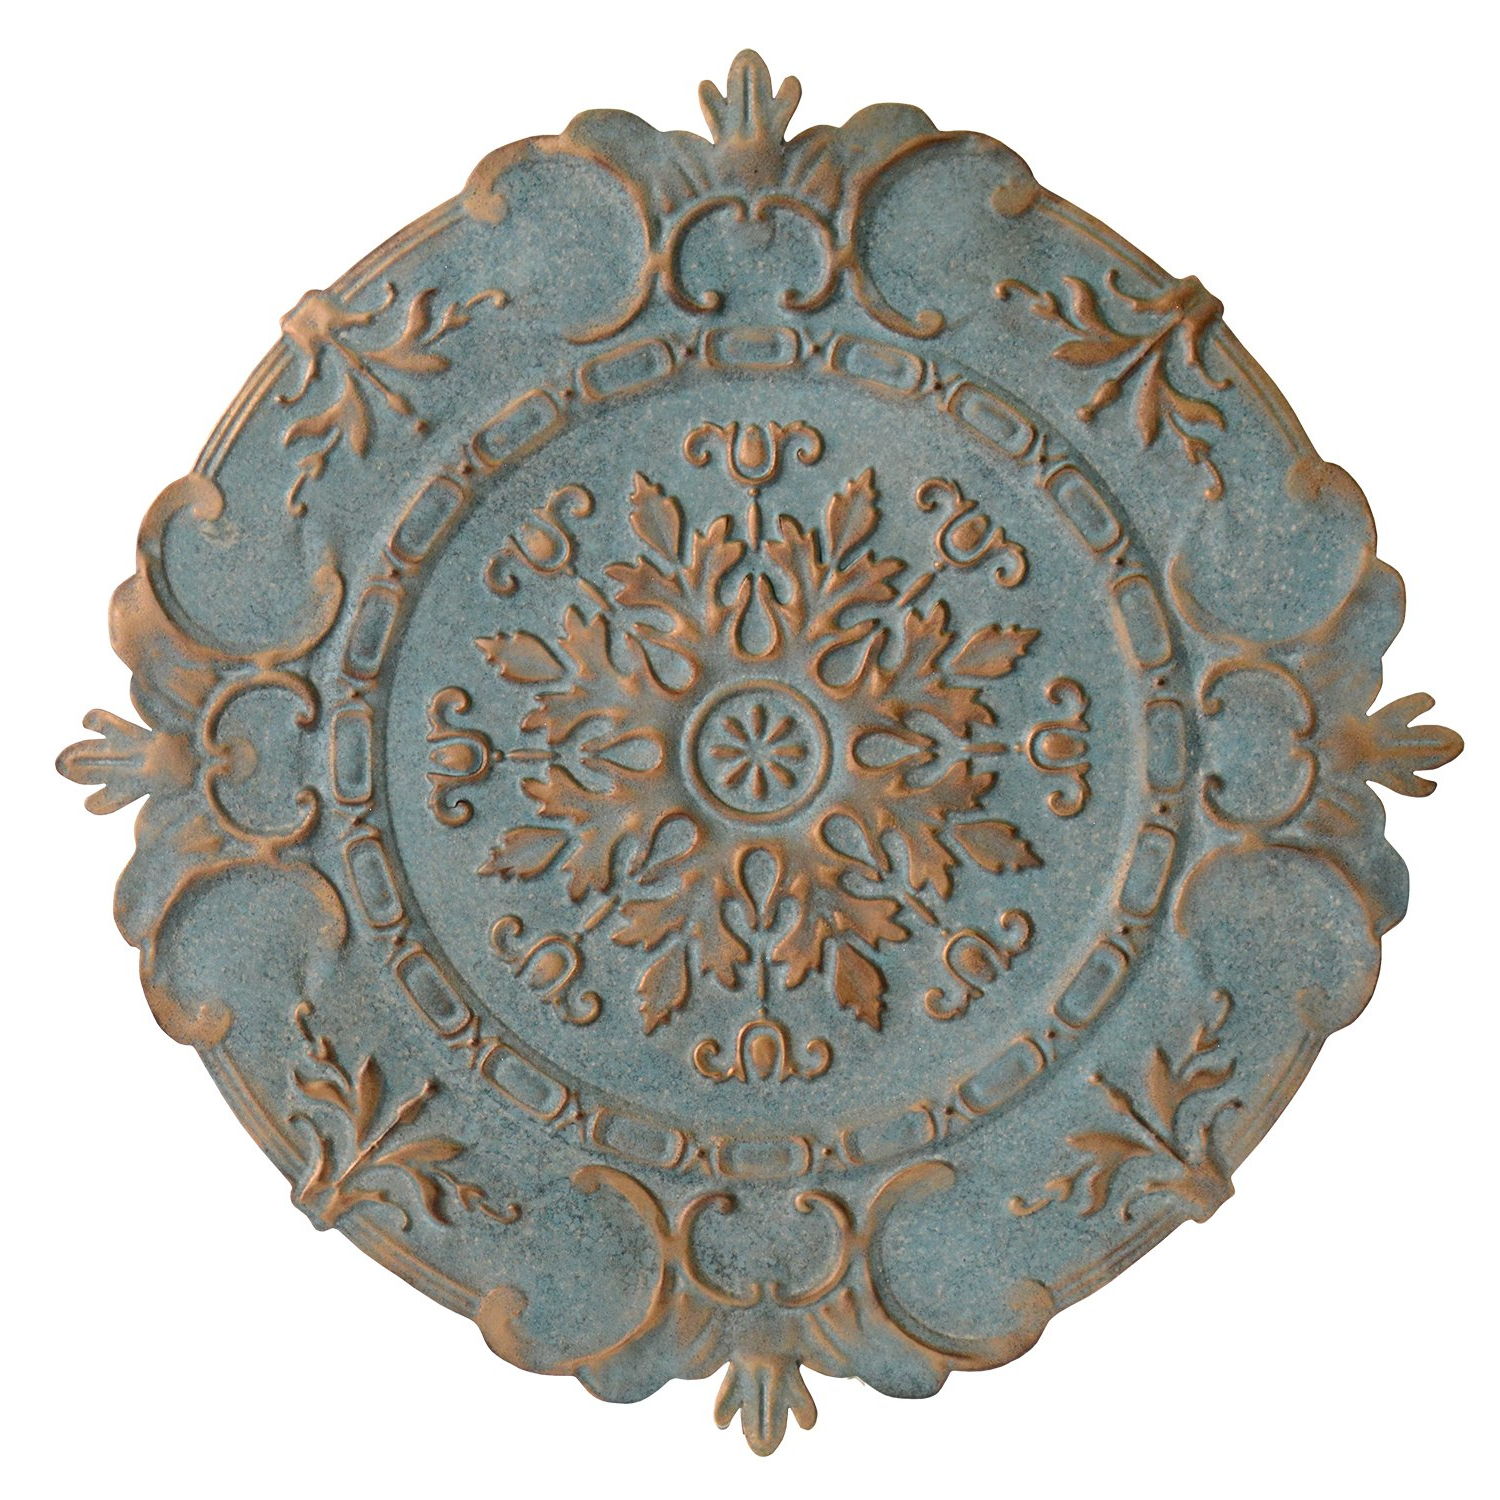 European Medallion Wall Decor With Preferred Amazon: Stratton Home Decor European Medallion Wall Decor, Blue (View 7 of 20)